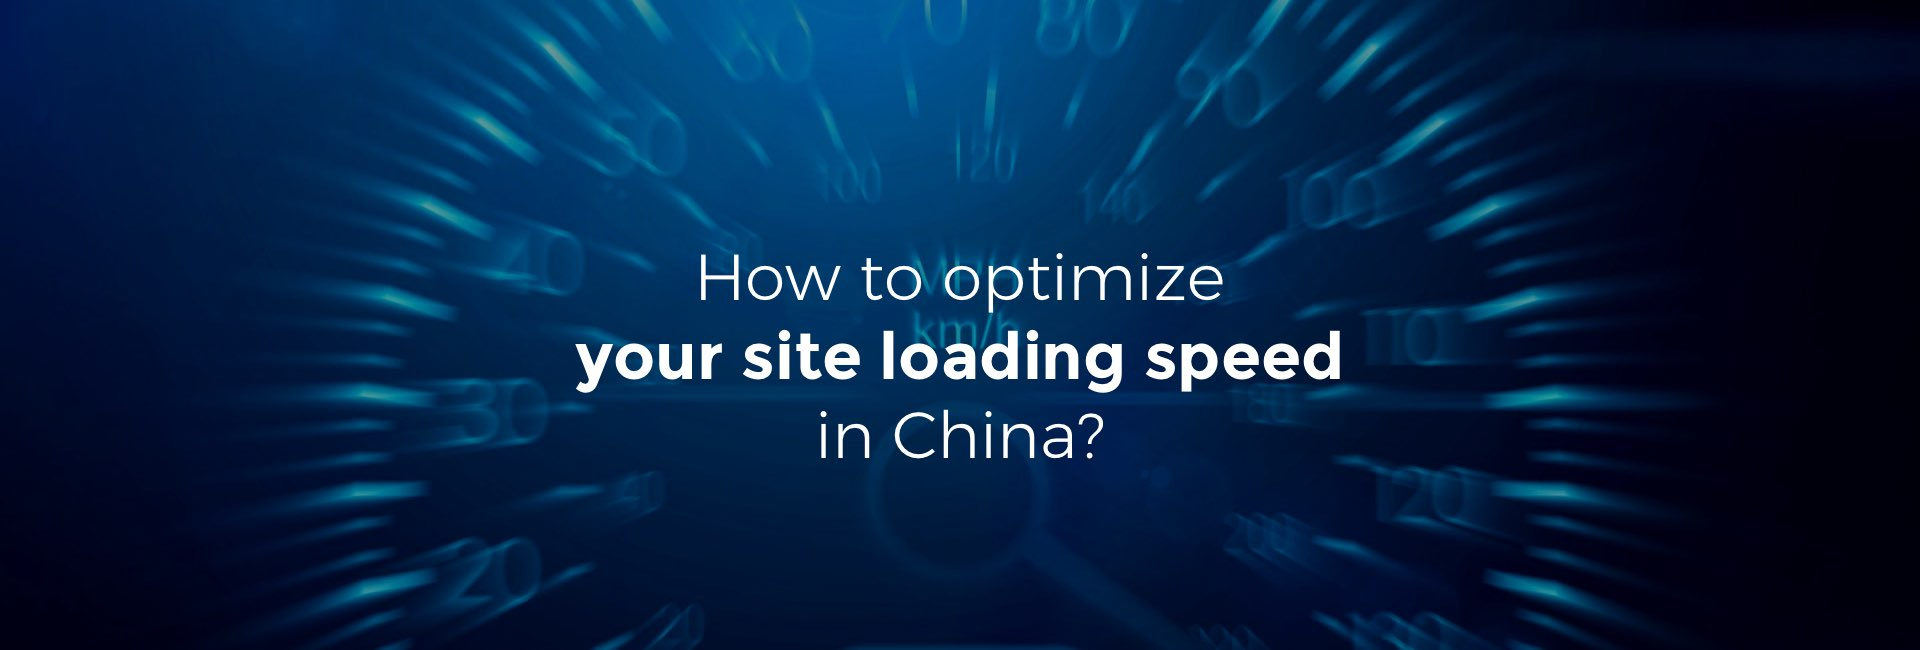 How to optimize your site loading speed in China with a CDN